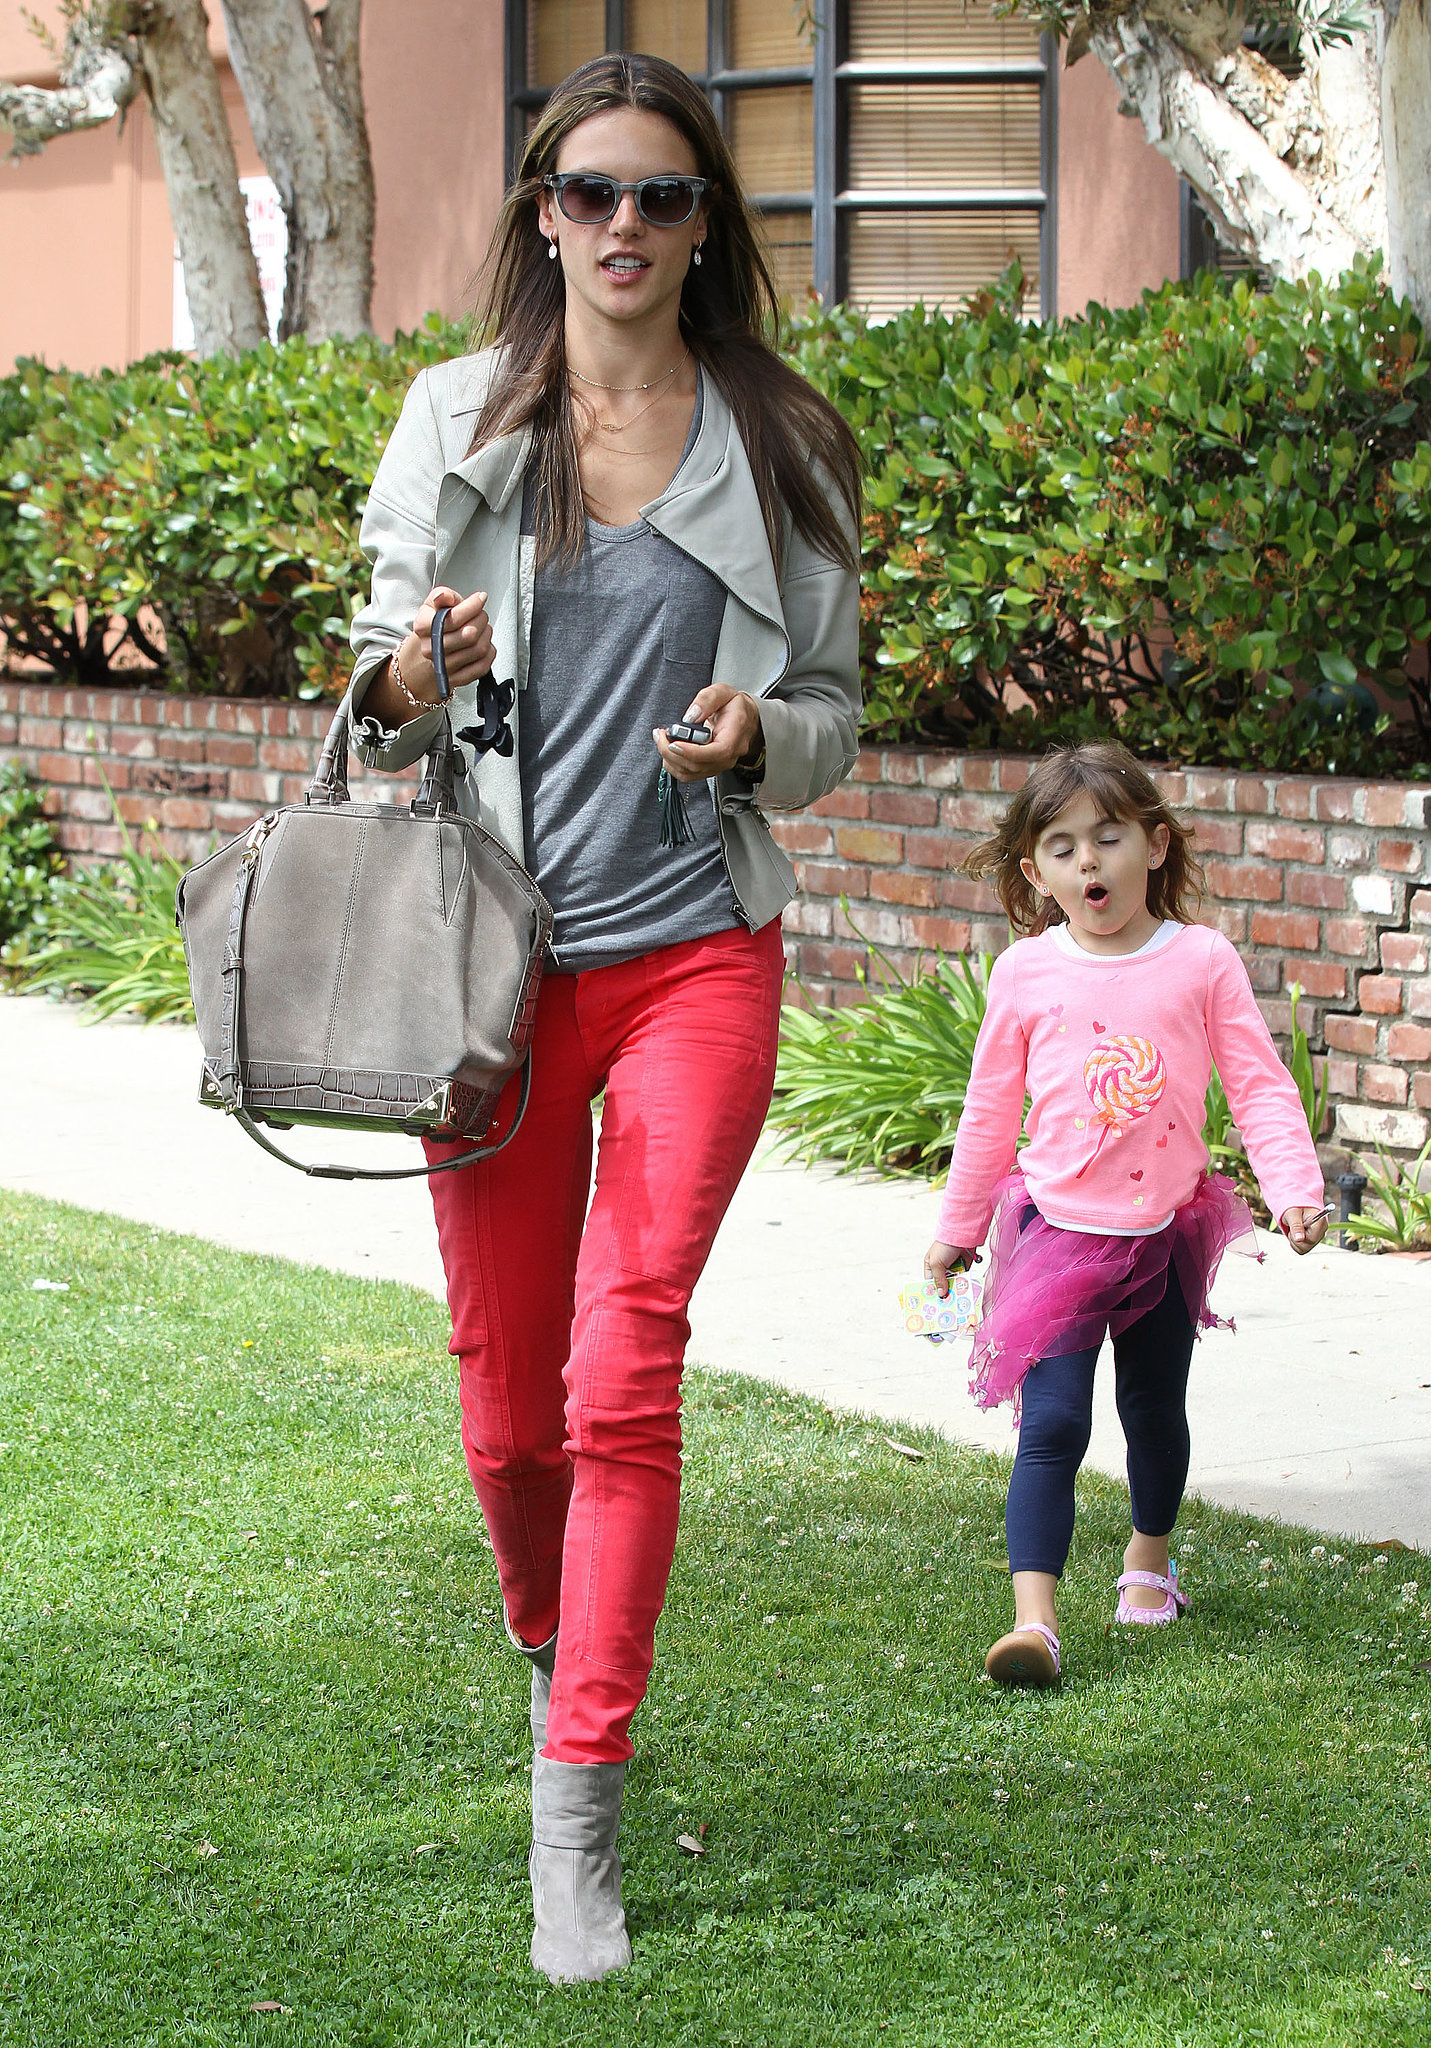 While paying a visit to the doctor, Alessandra Ambrosio kept her top half and Alexander Wang bag neutral but really punched things up o